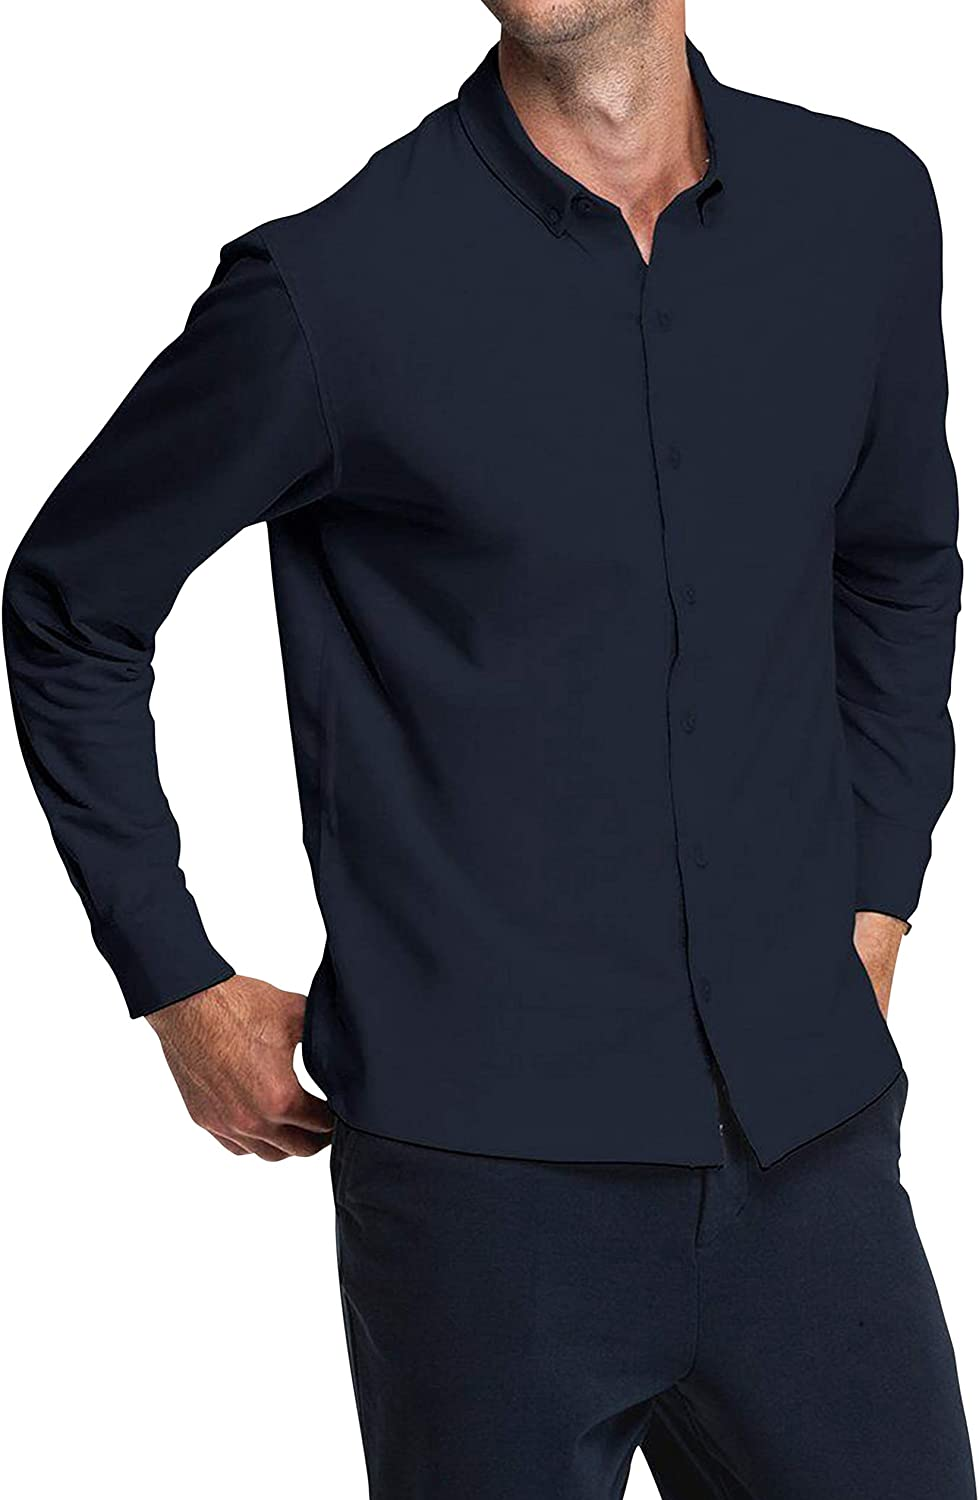 Swet Max 58% OFF Tailor Max 73% OFF Shirt Mindful